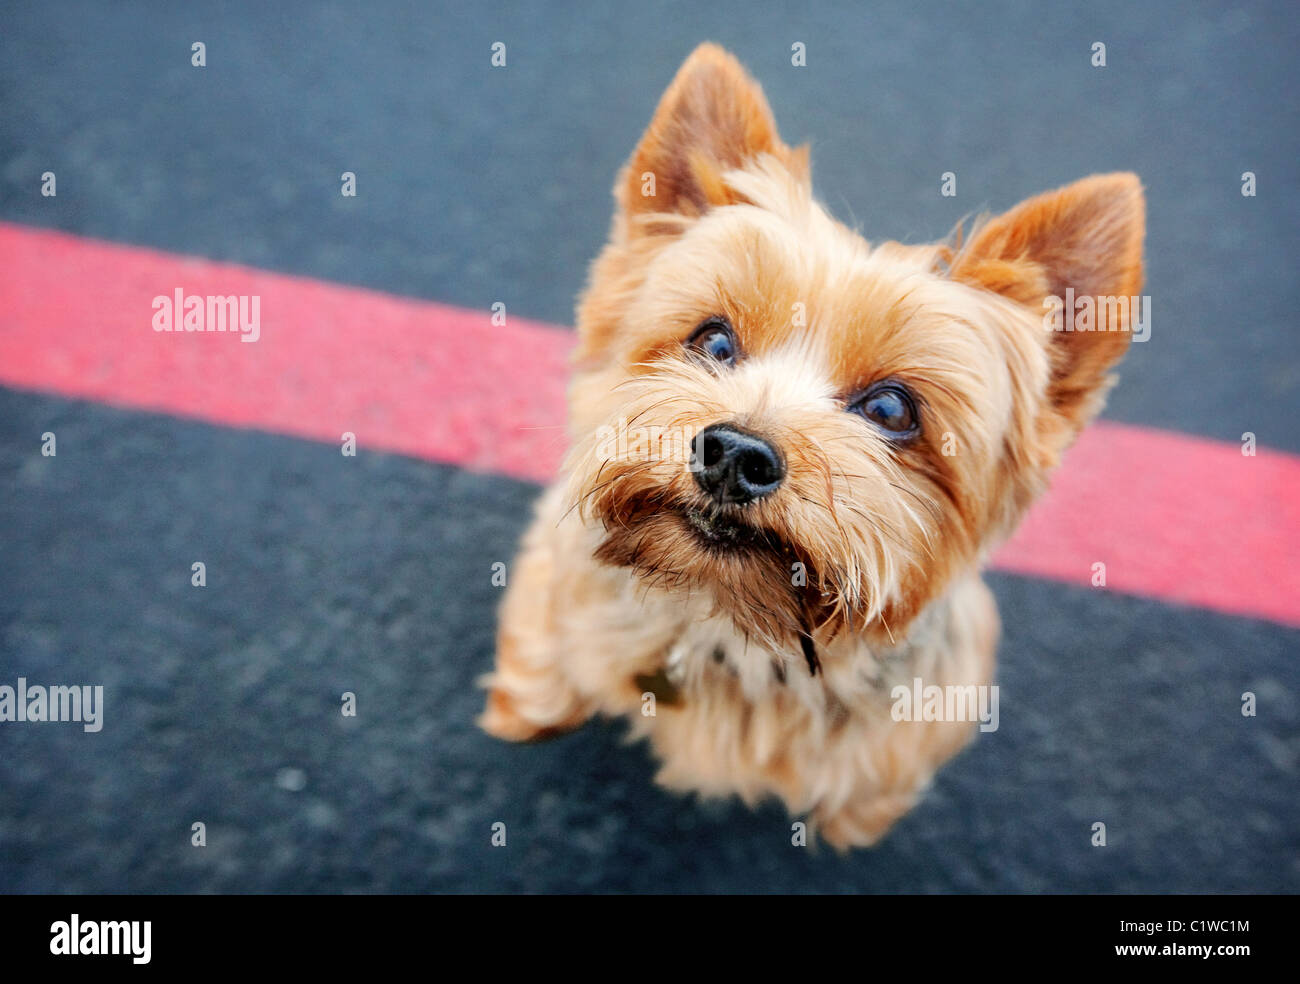 Yorkshire terrier dog on its hind legs looking up at camera. Standing on black asphalt with a red line. - Stock Image